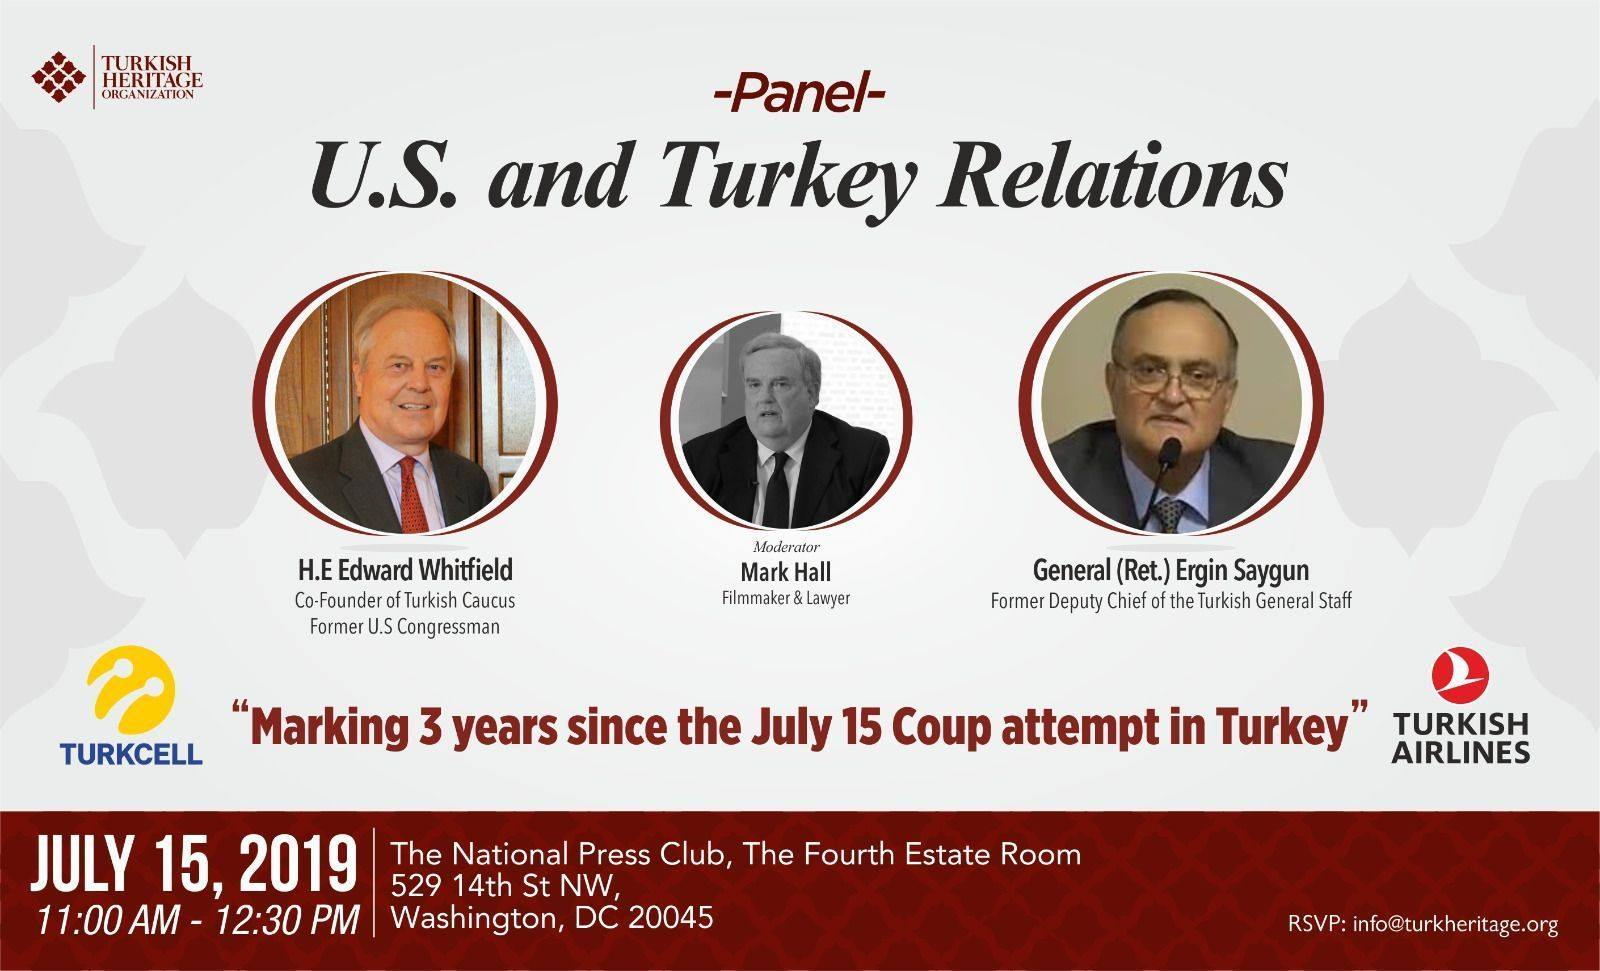 Marking 3 years since the July 15 Coup attempt in Turkey